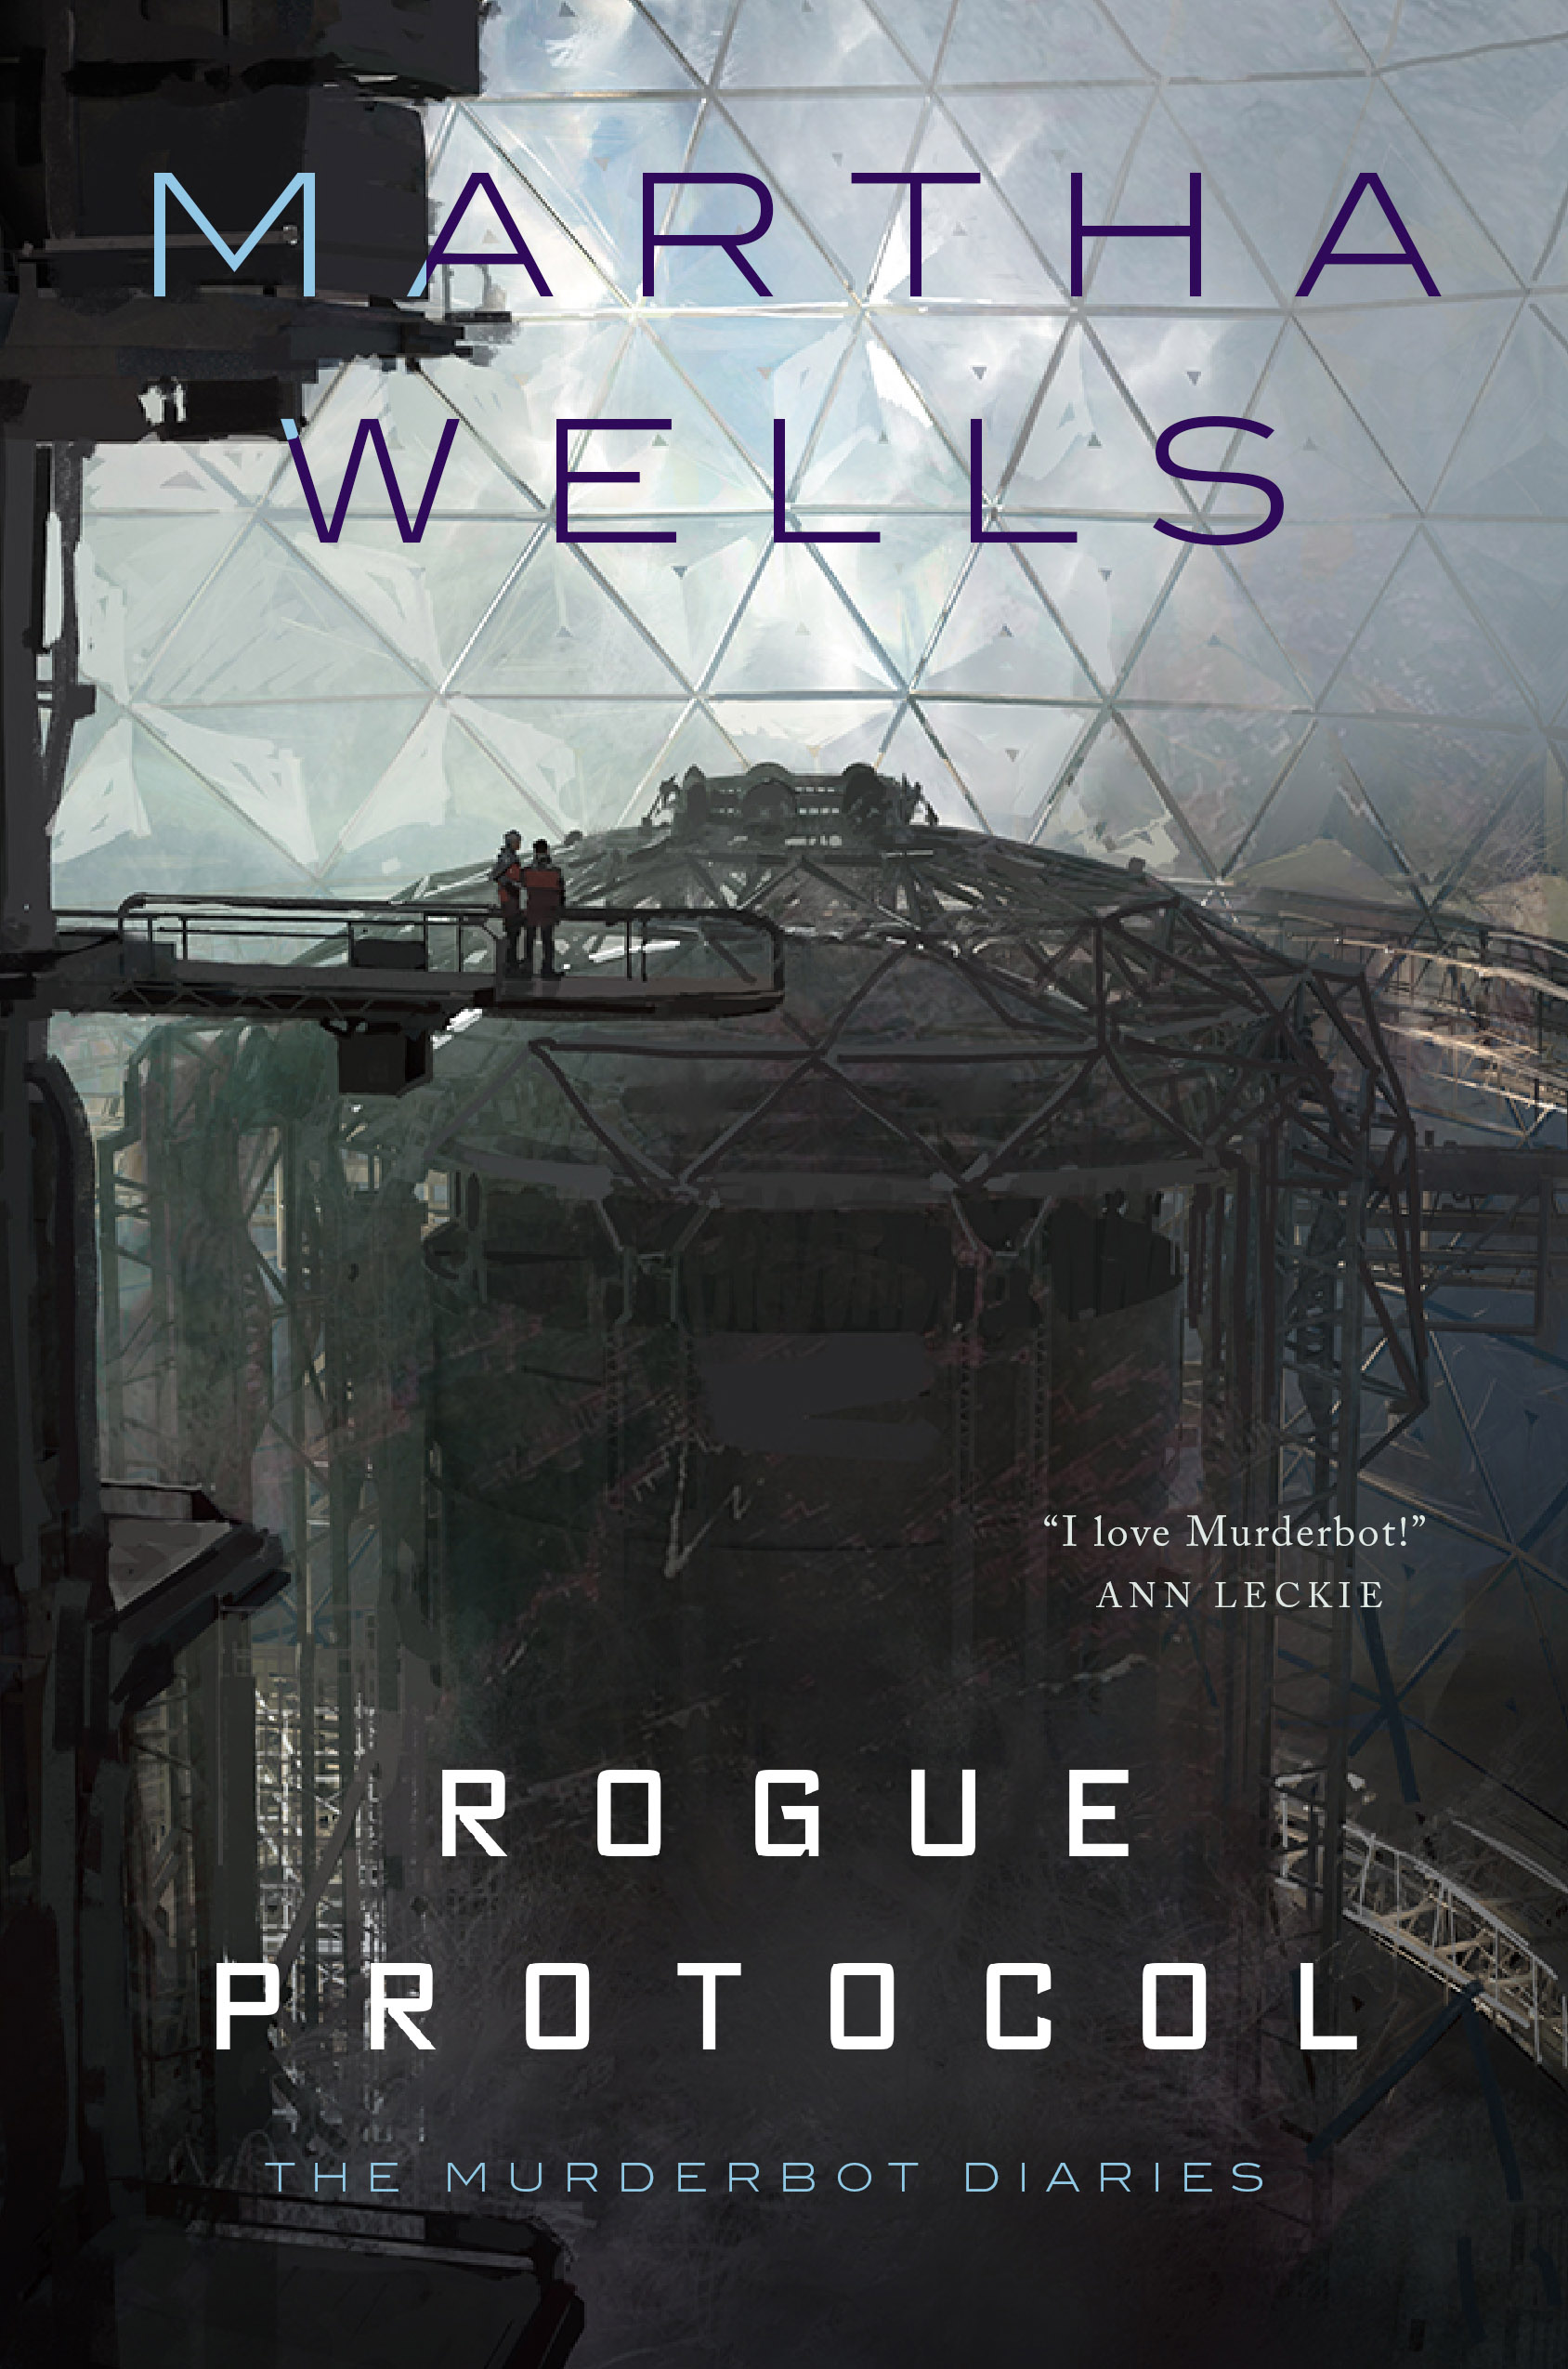 'Rogue Protocol' by Martha Wells (reviewed by Skuldren)